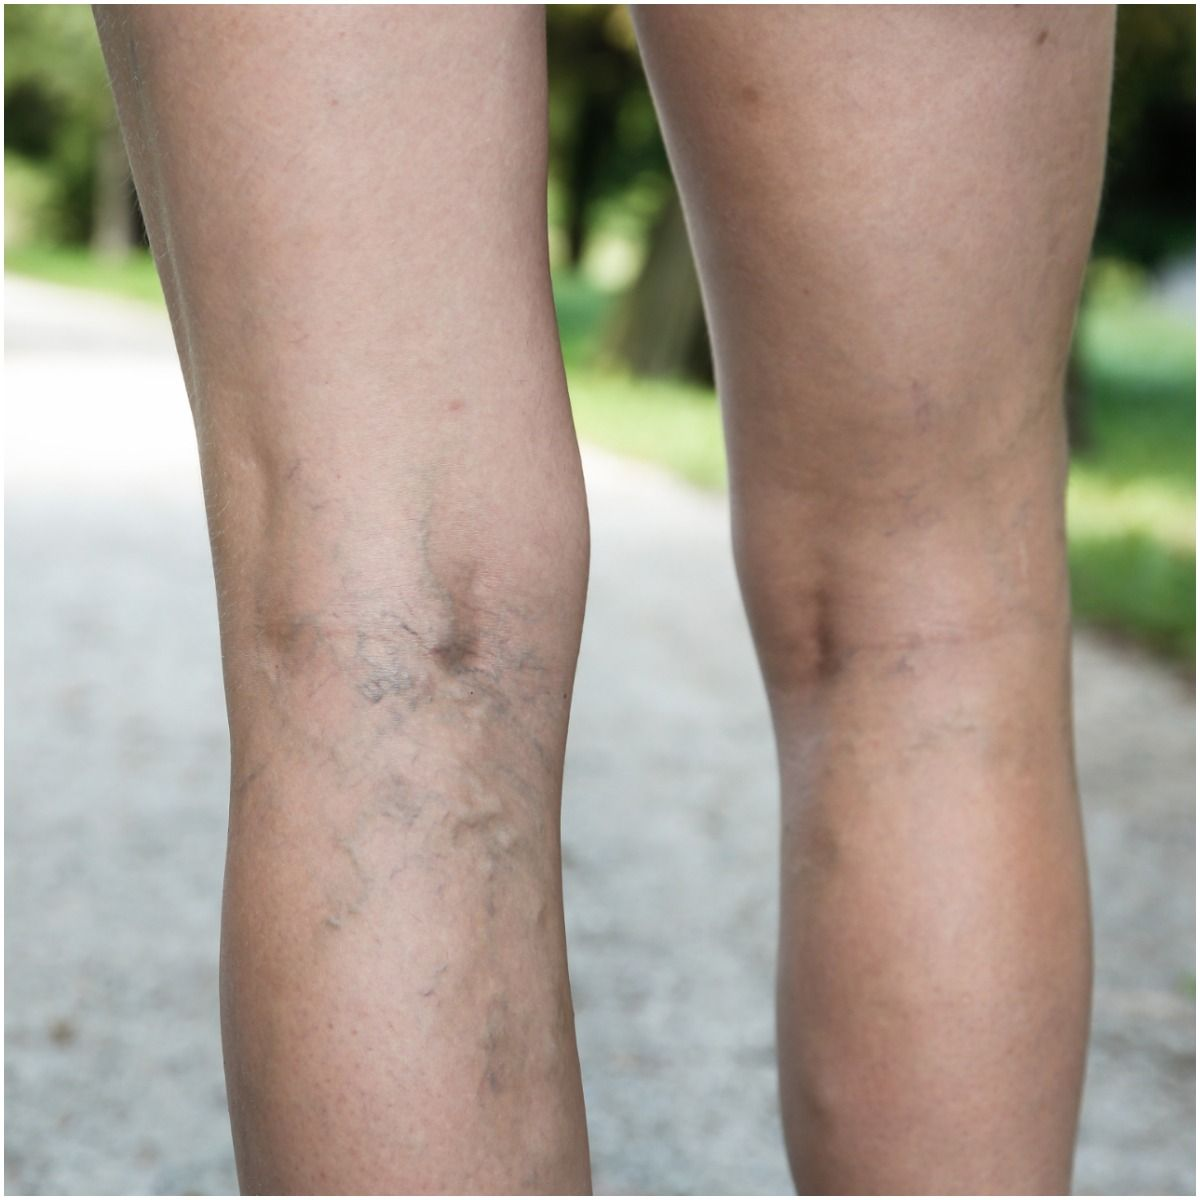 Spiritual Meaning of Varicose Veins